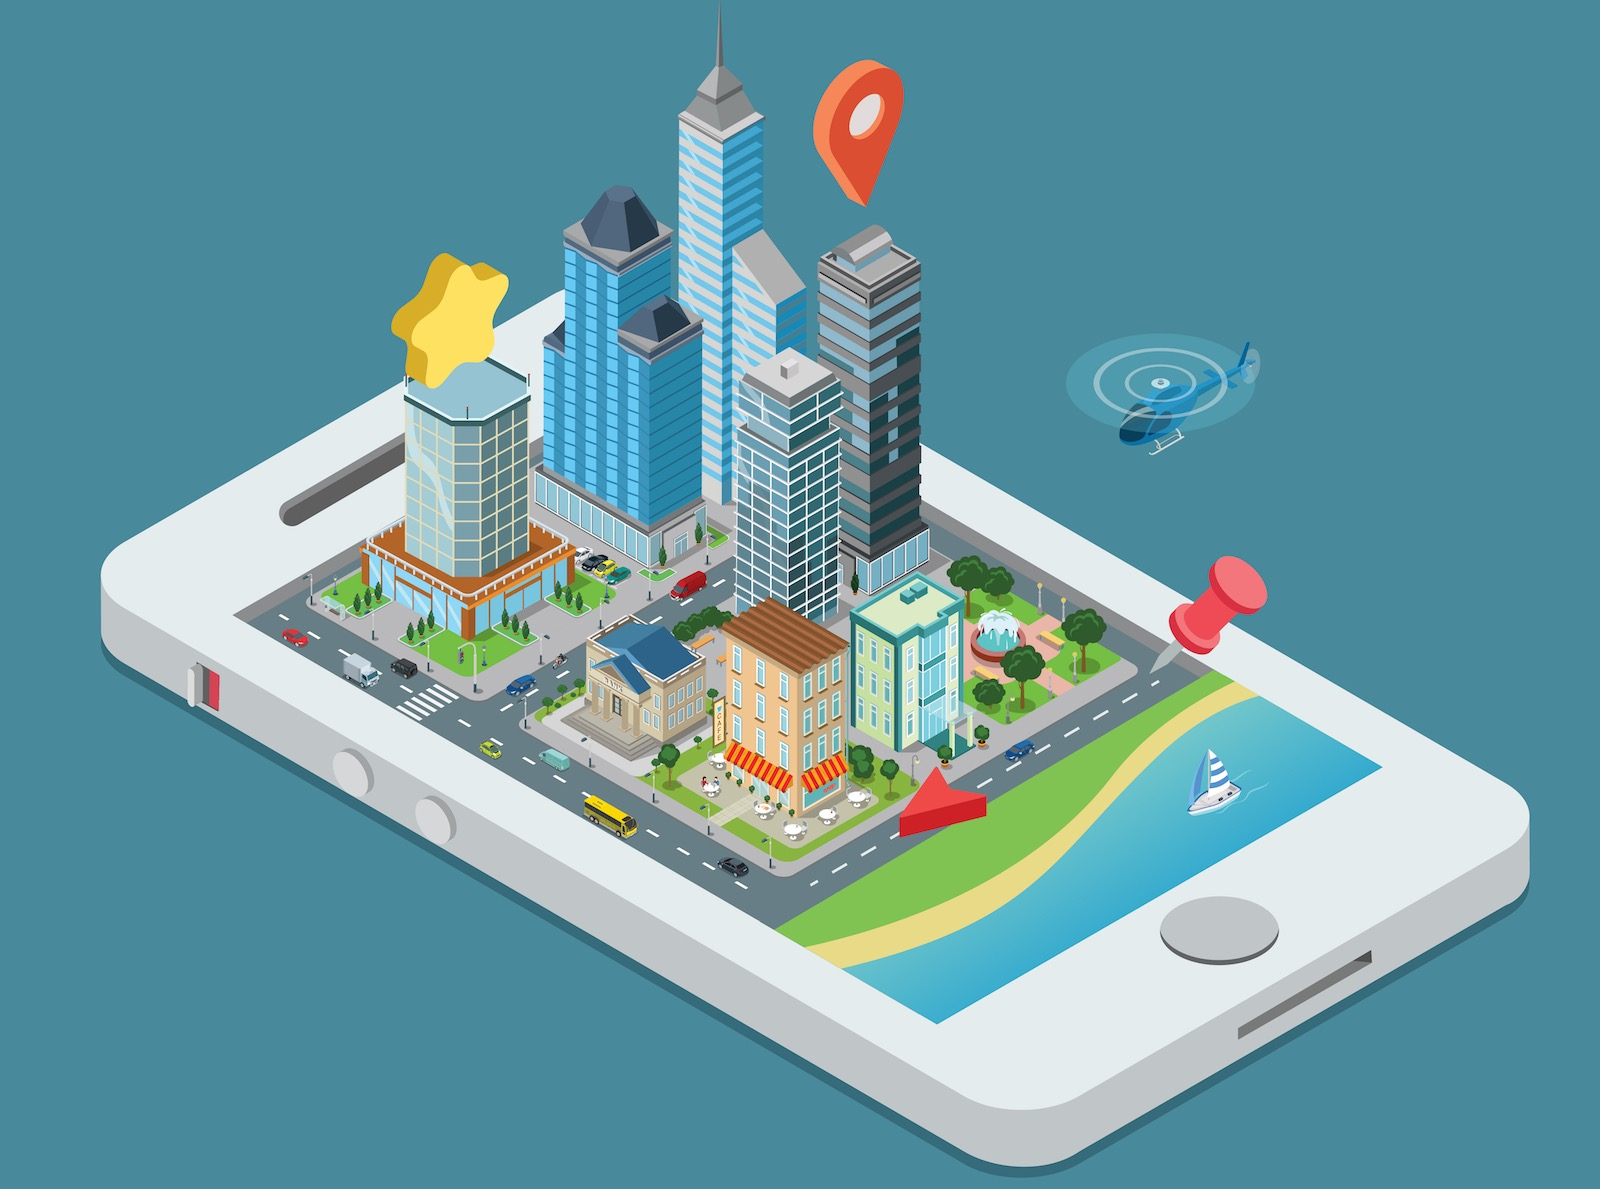 Smart city technologies are constantly evolving